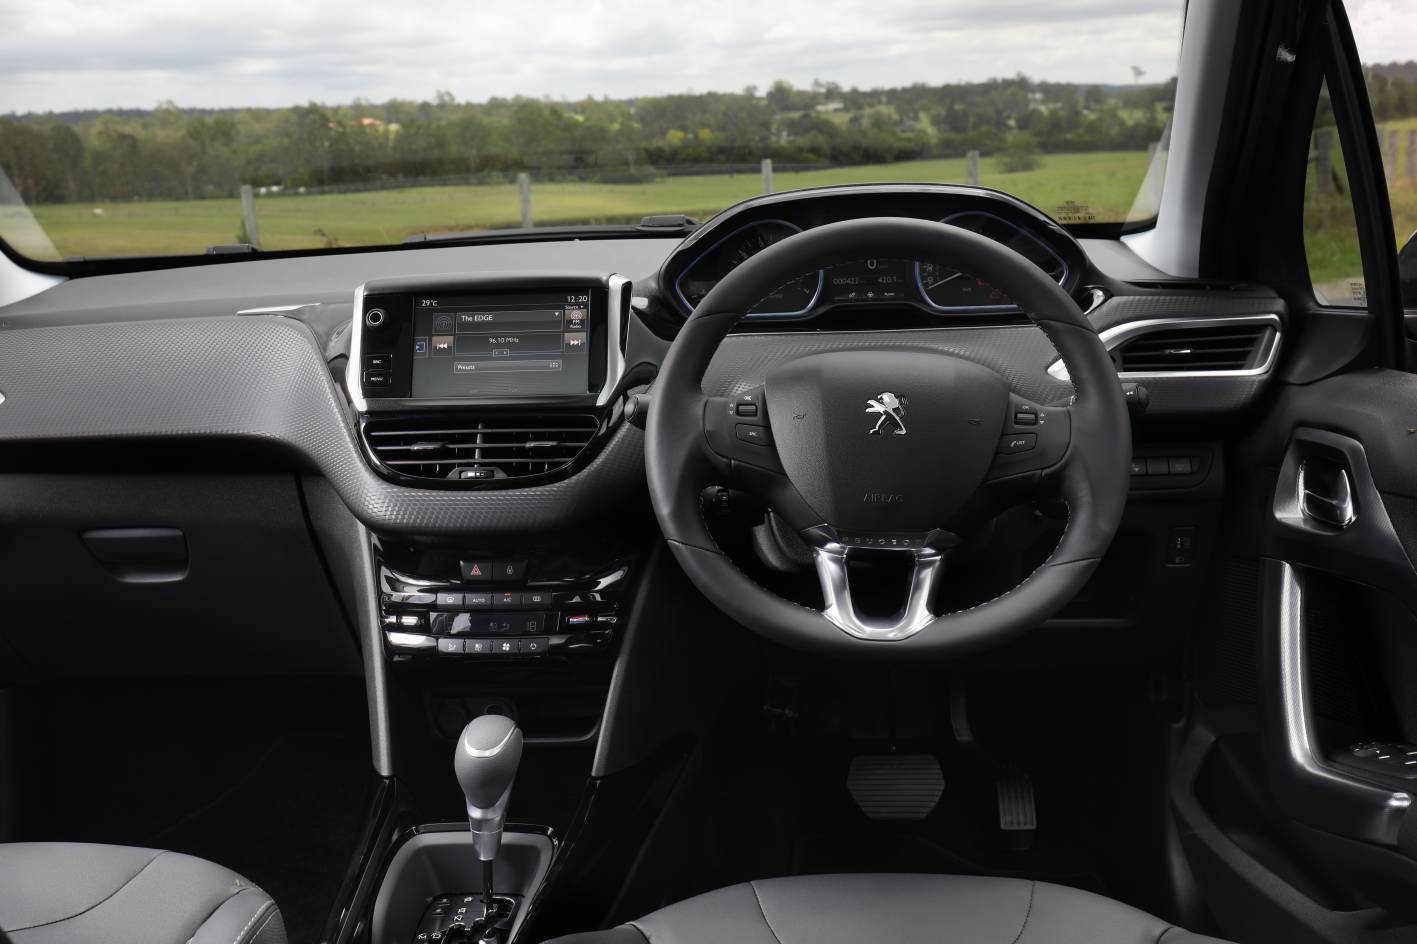 New Look Peugeot 2008 Pricing And Specification Announced